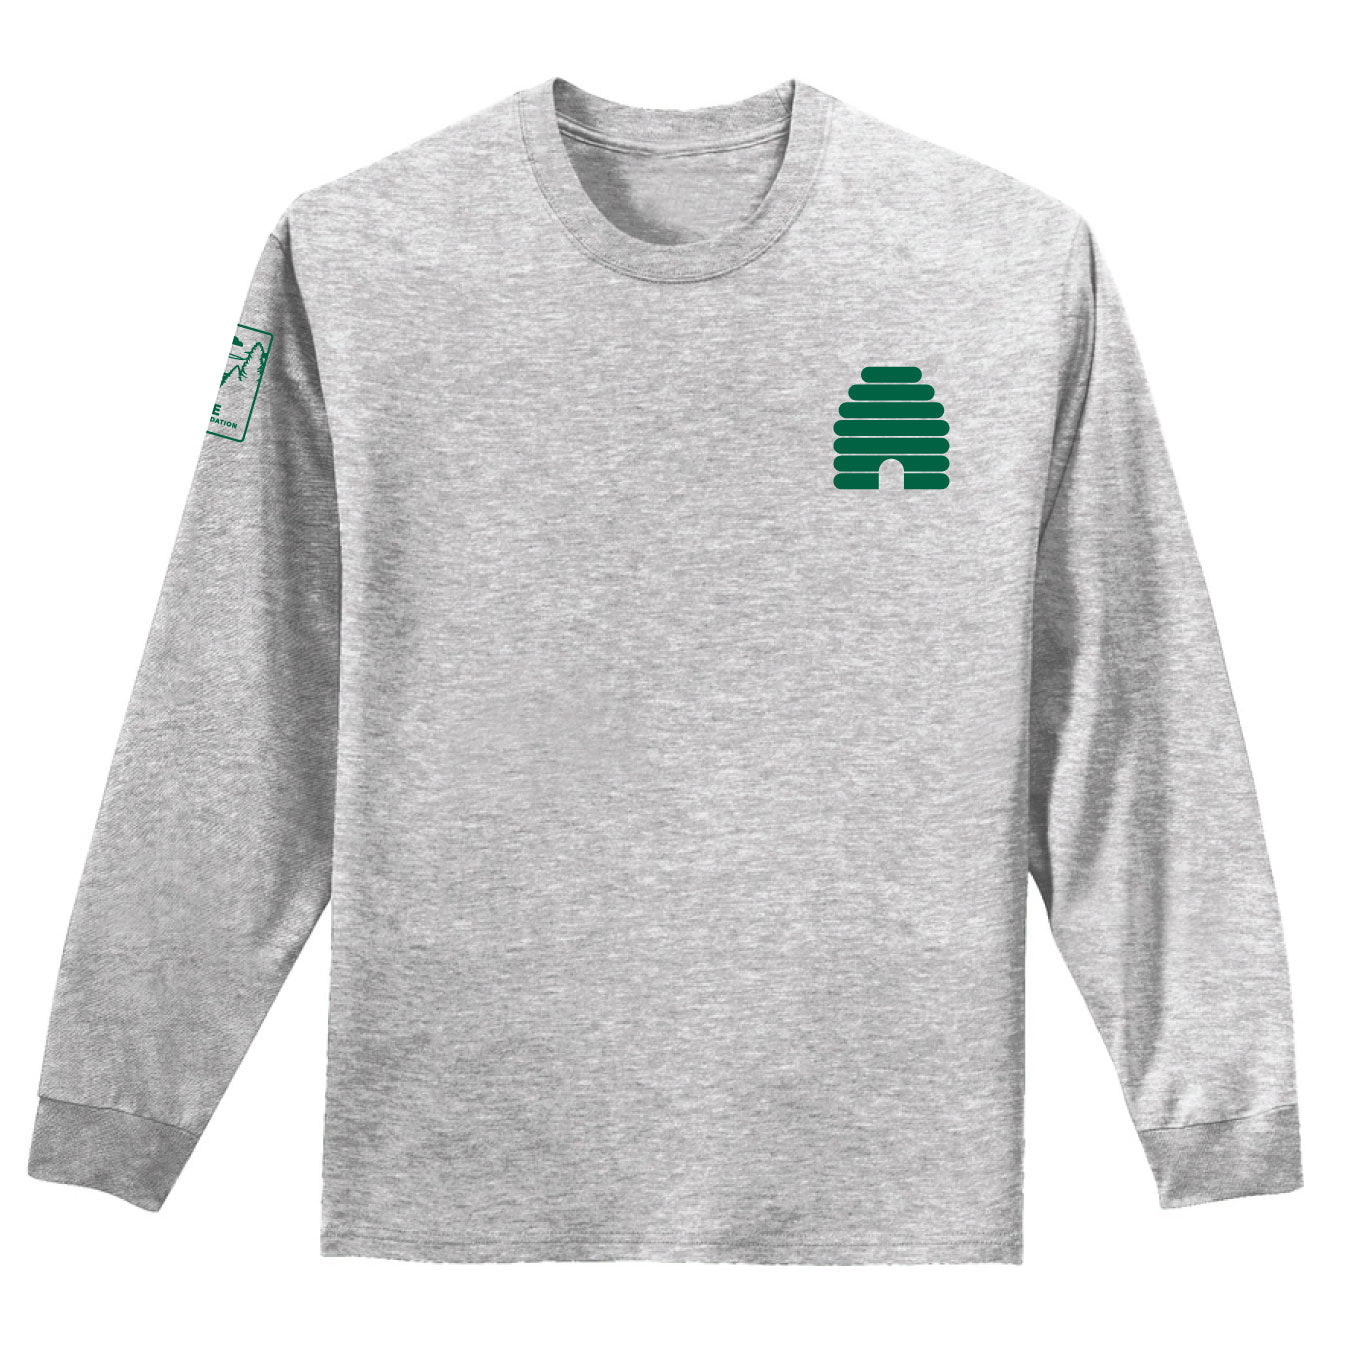 Hive Long Sleeve Camper Tee